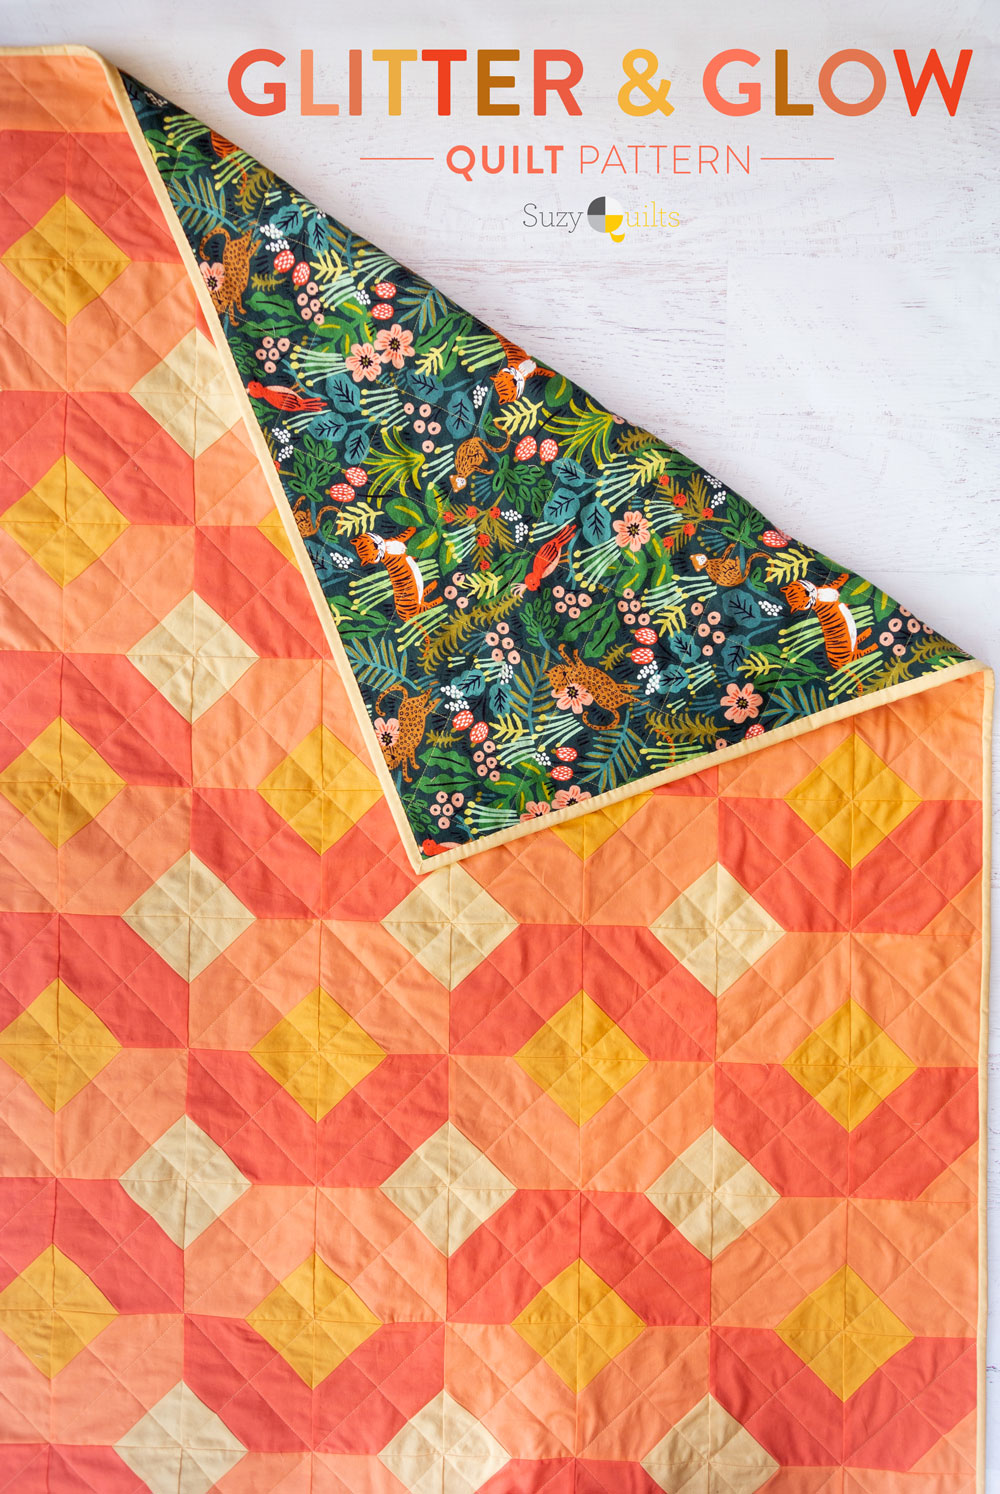 The Glitter and Glow quilt pattern is fun and versatile. Use yardage, fat quarters, or scraps you have in your stash!